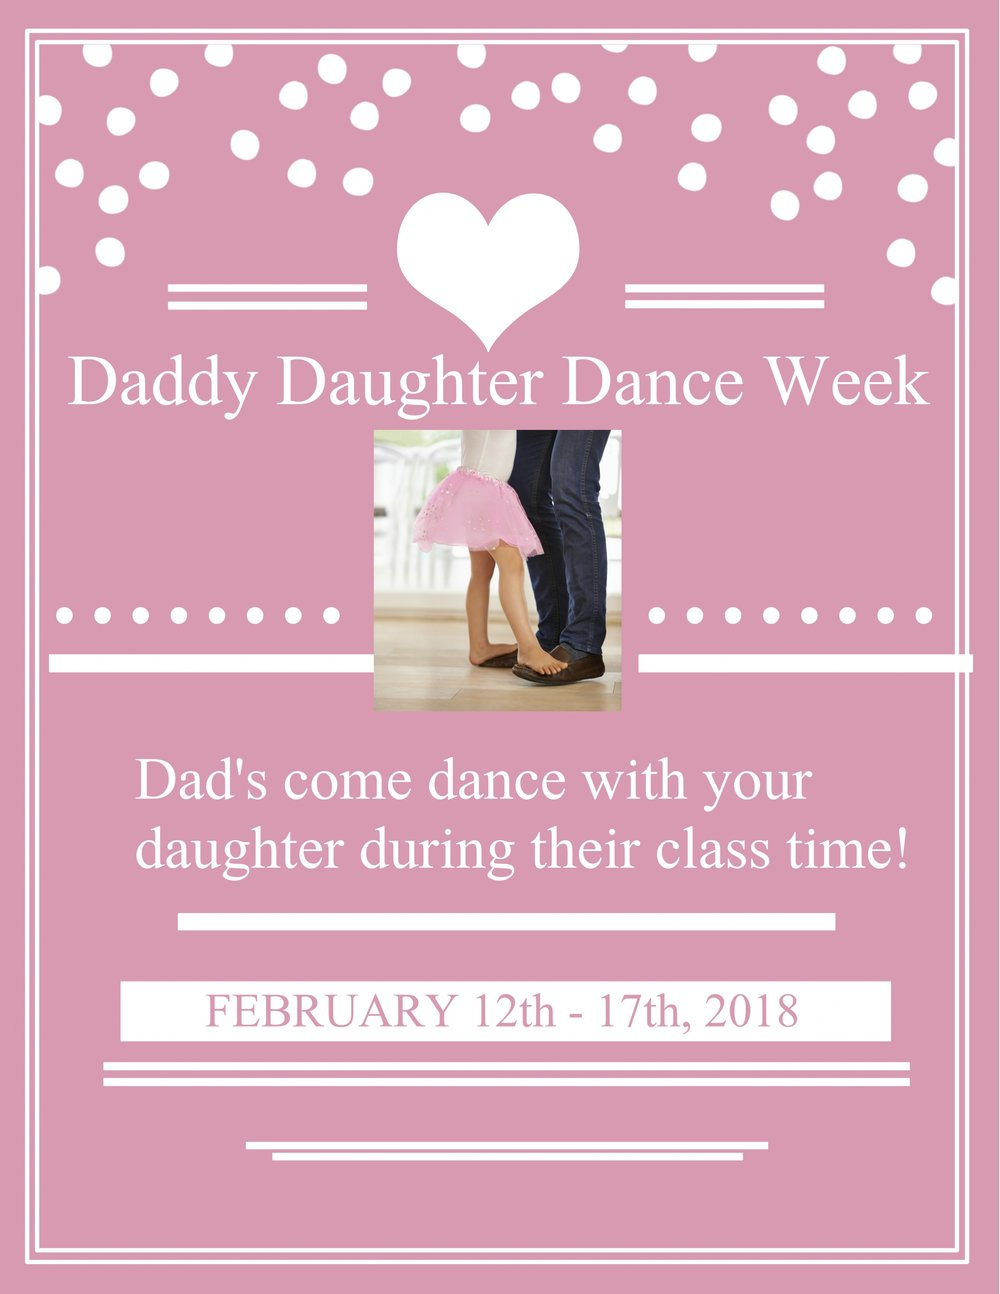 Daddy Daughter Dance Week.jpg